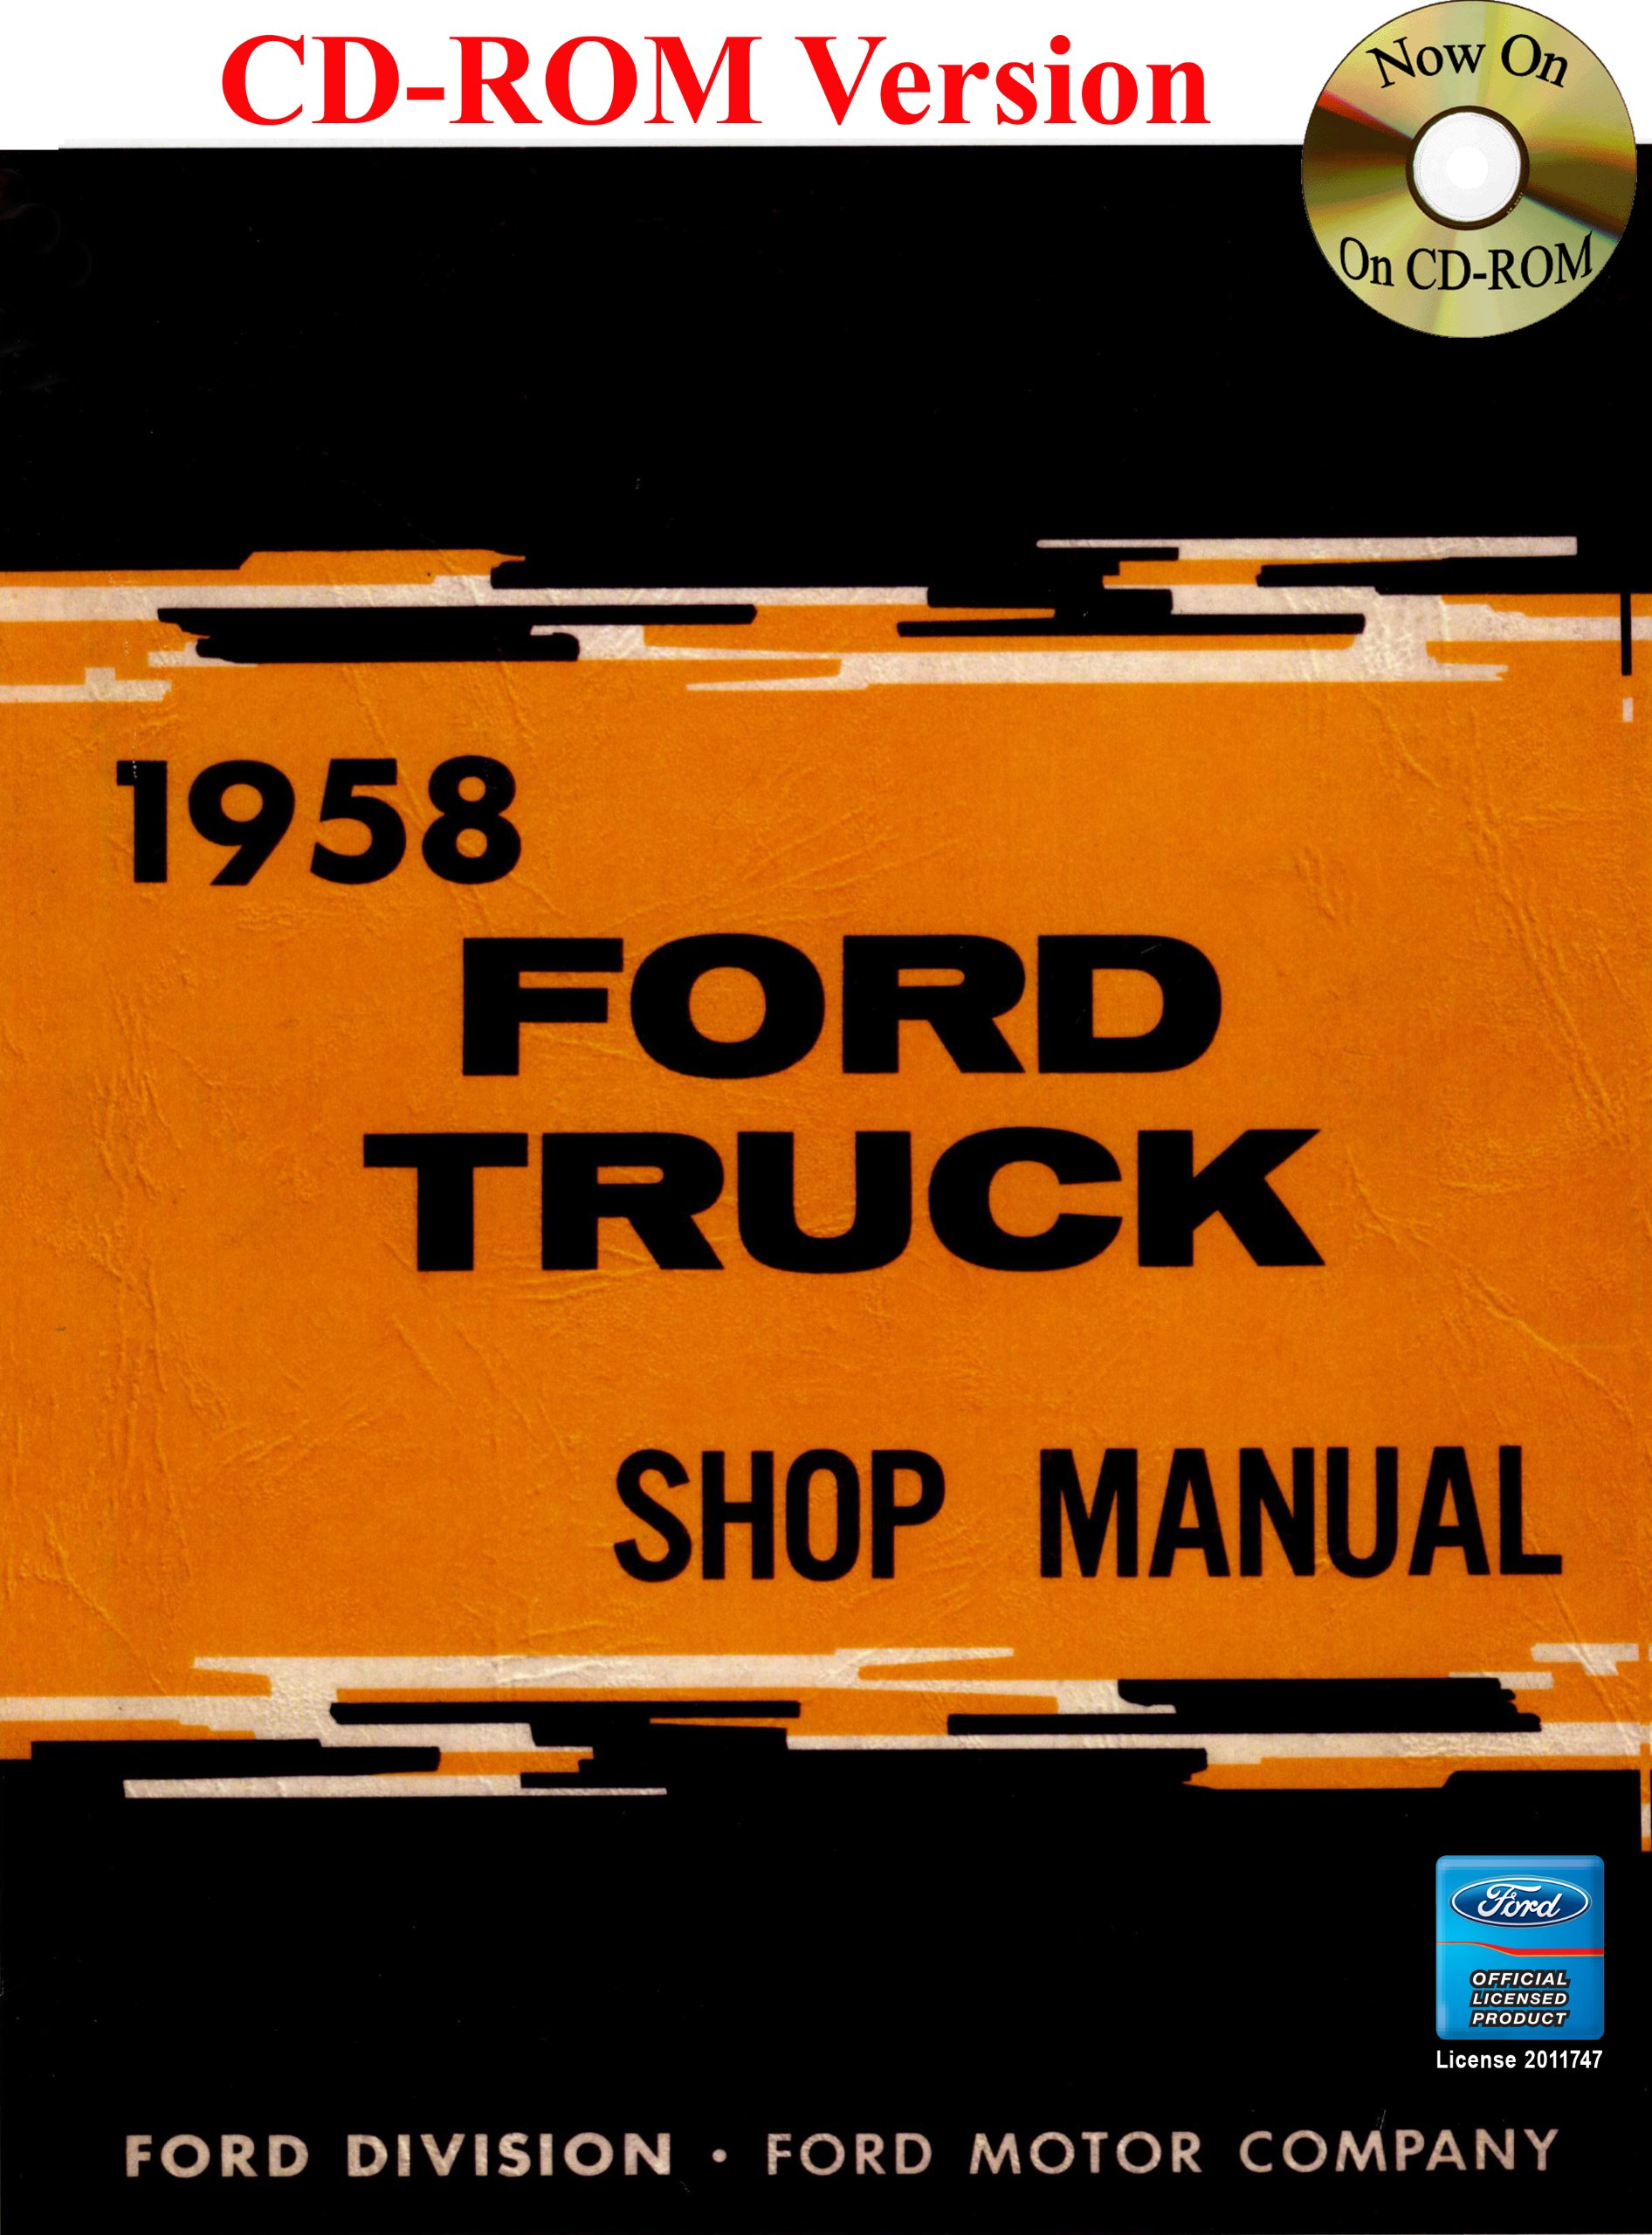 1958 ford truck shop manual ford motor company david e leblanc 1958 ford truck shop manual ford motor company david e leblanc 9781603710671 amazon books fandeluxe Gallery